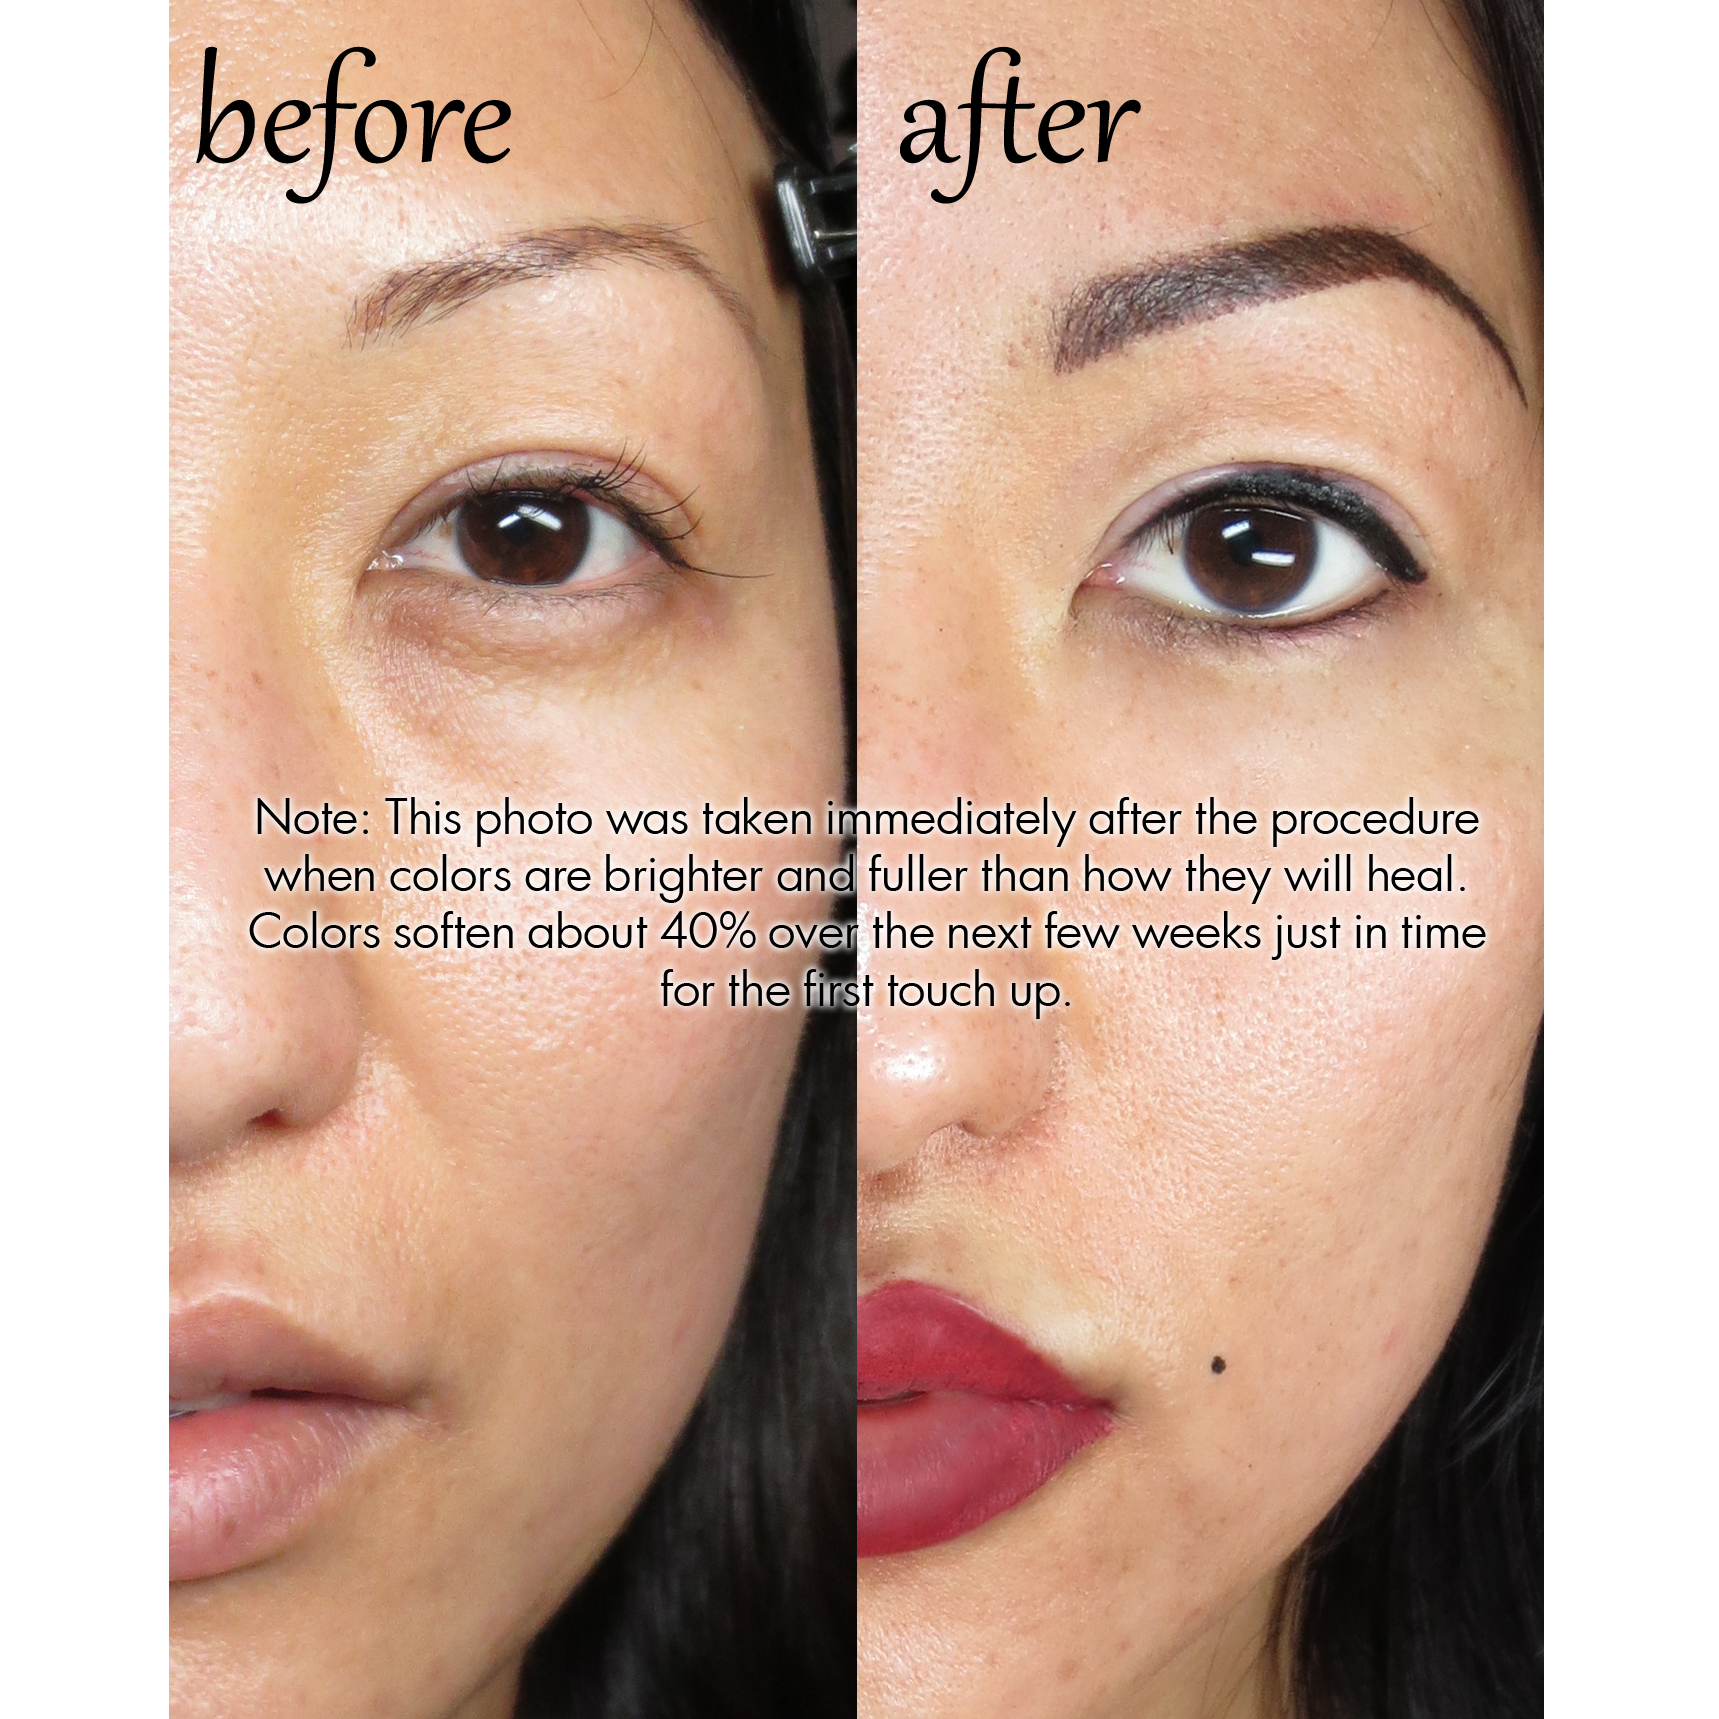 Permanent Makeup Eyebrows Before After And Healed | Fay Blog